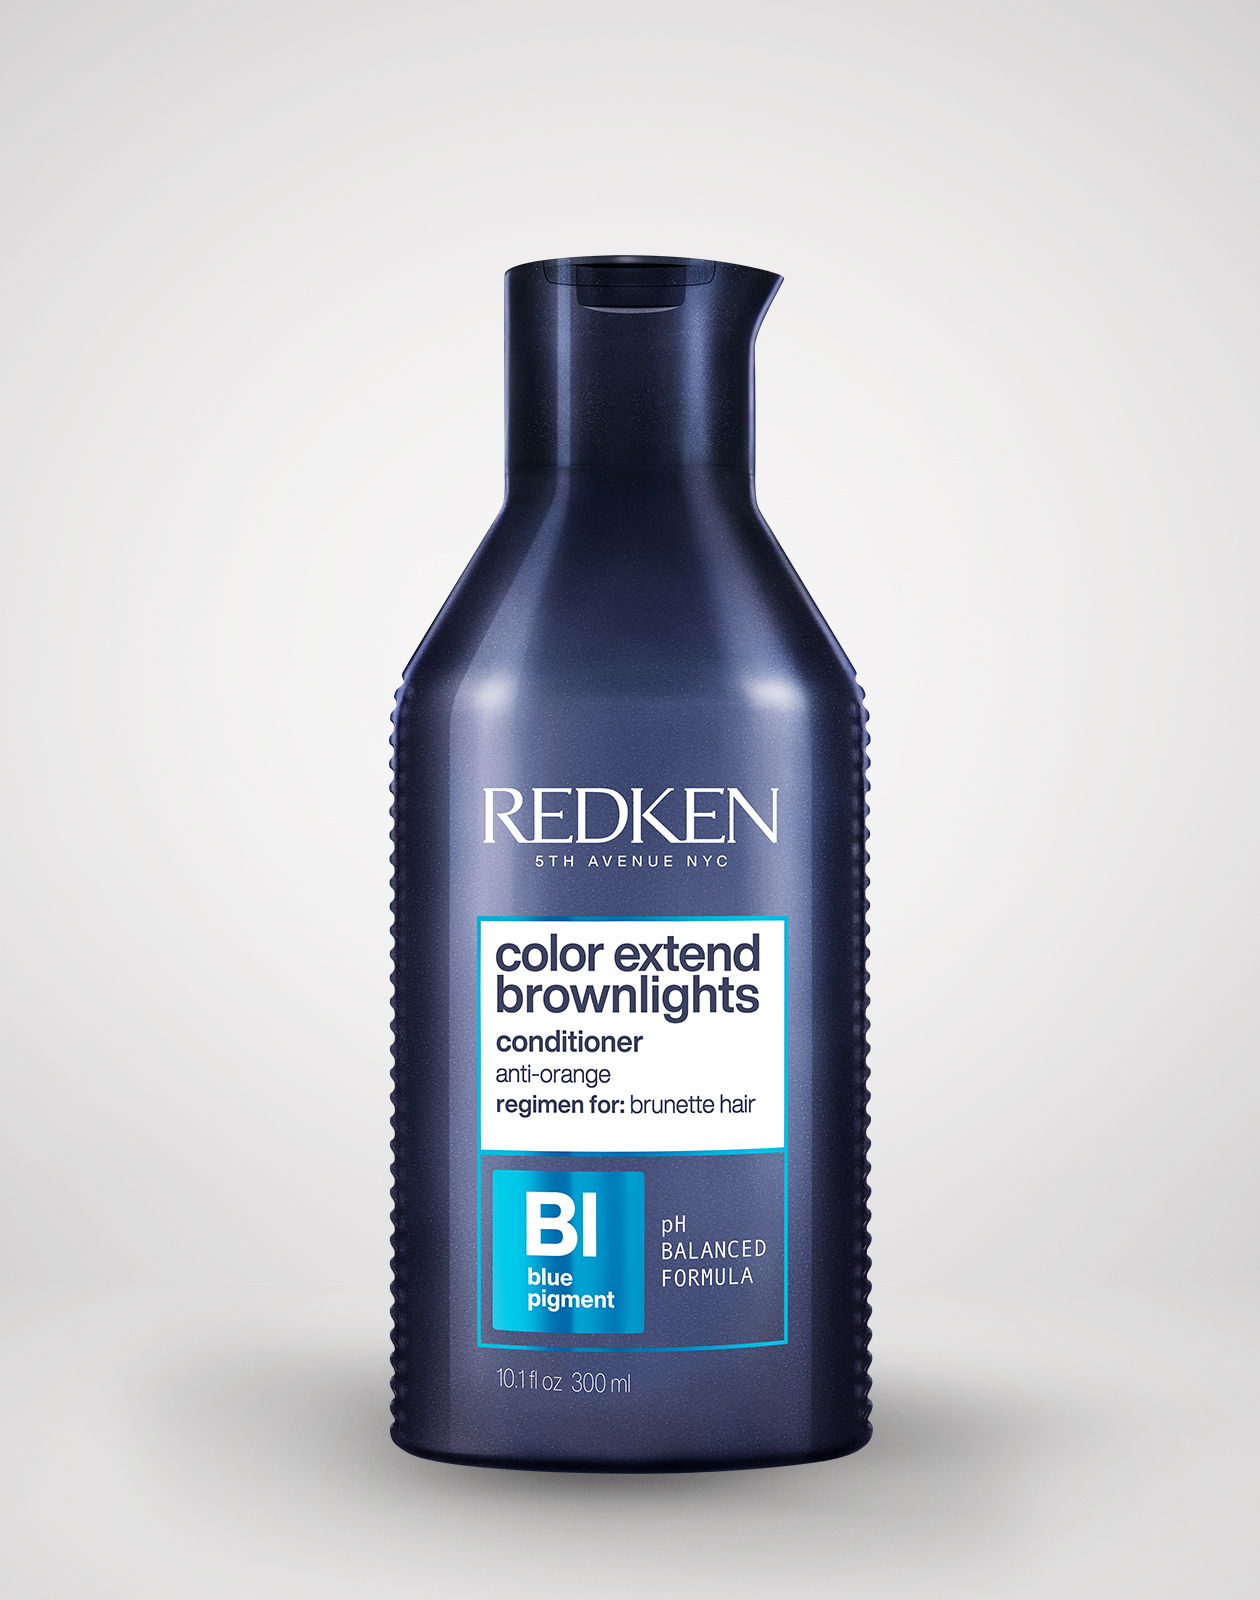 Redken-2019-Color-Extend-Brownlights-Conditioner-Product-Shot-Gray-1260x1600